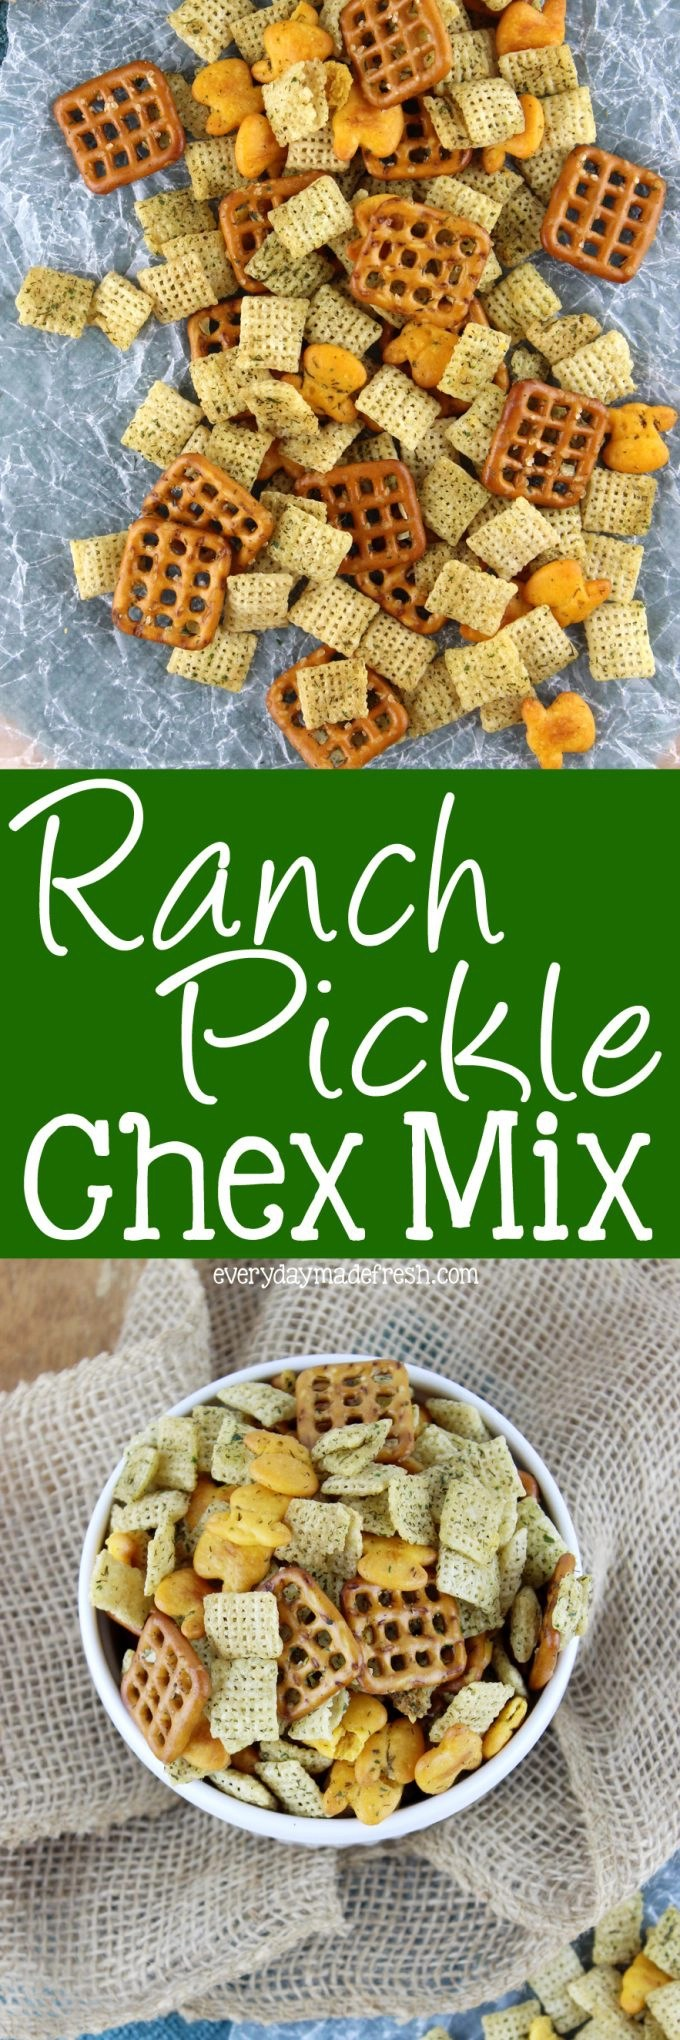 Alright pickle lovers, this Ranch Pickle Chex Mix is for you! Tangy, garlicky, and made in 5 minutes, in the microwave! | EverydayMadeFresh.com